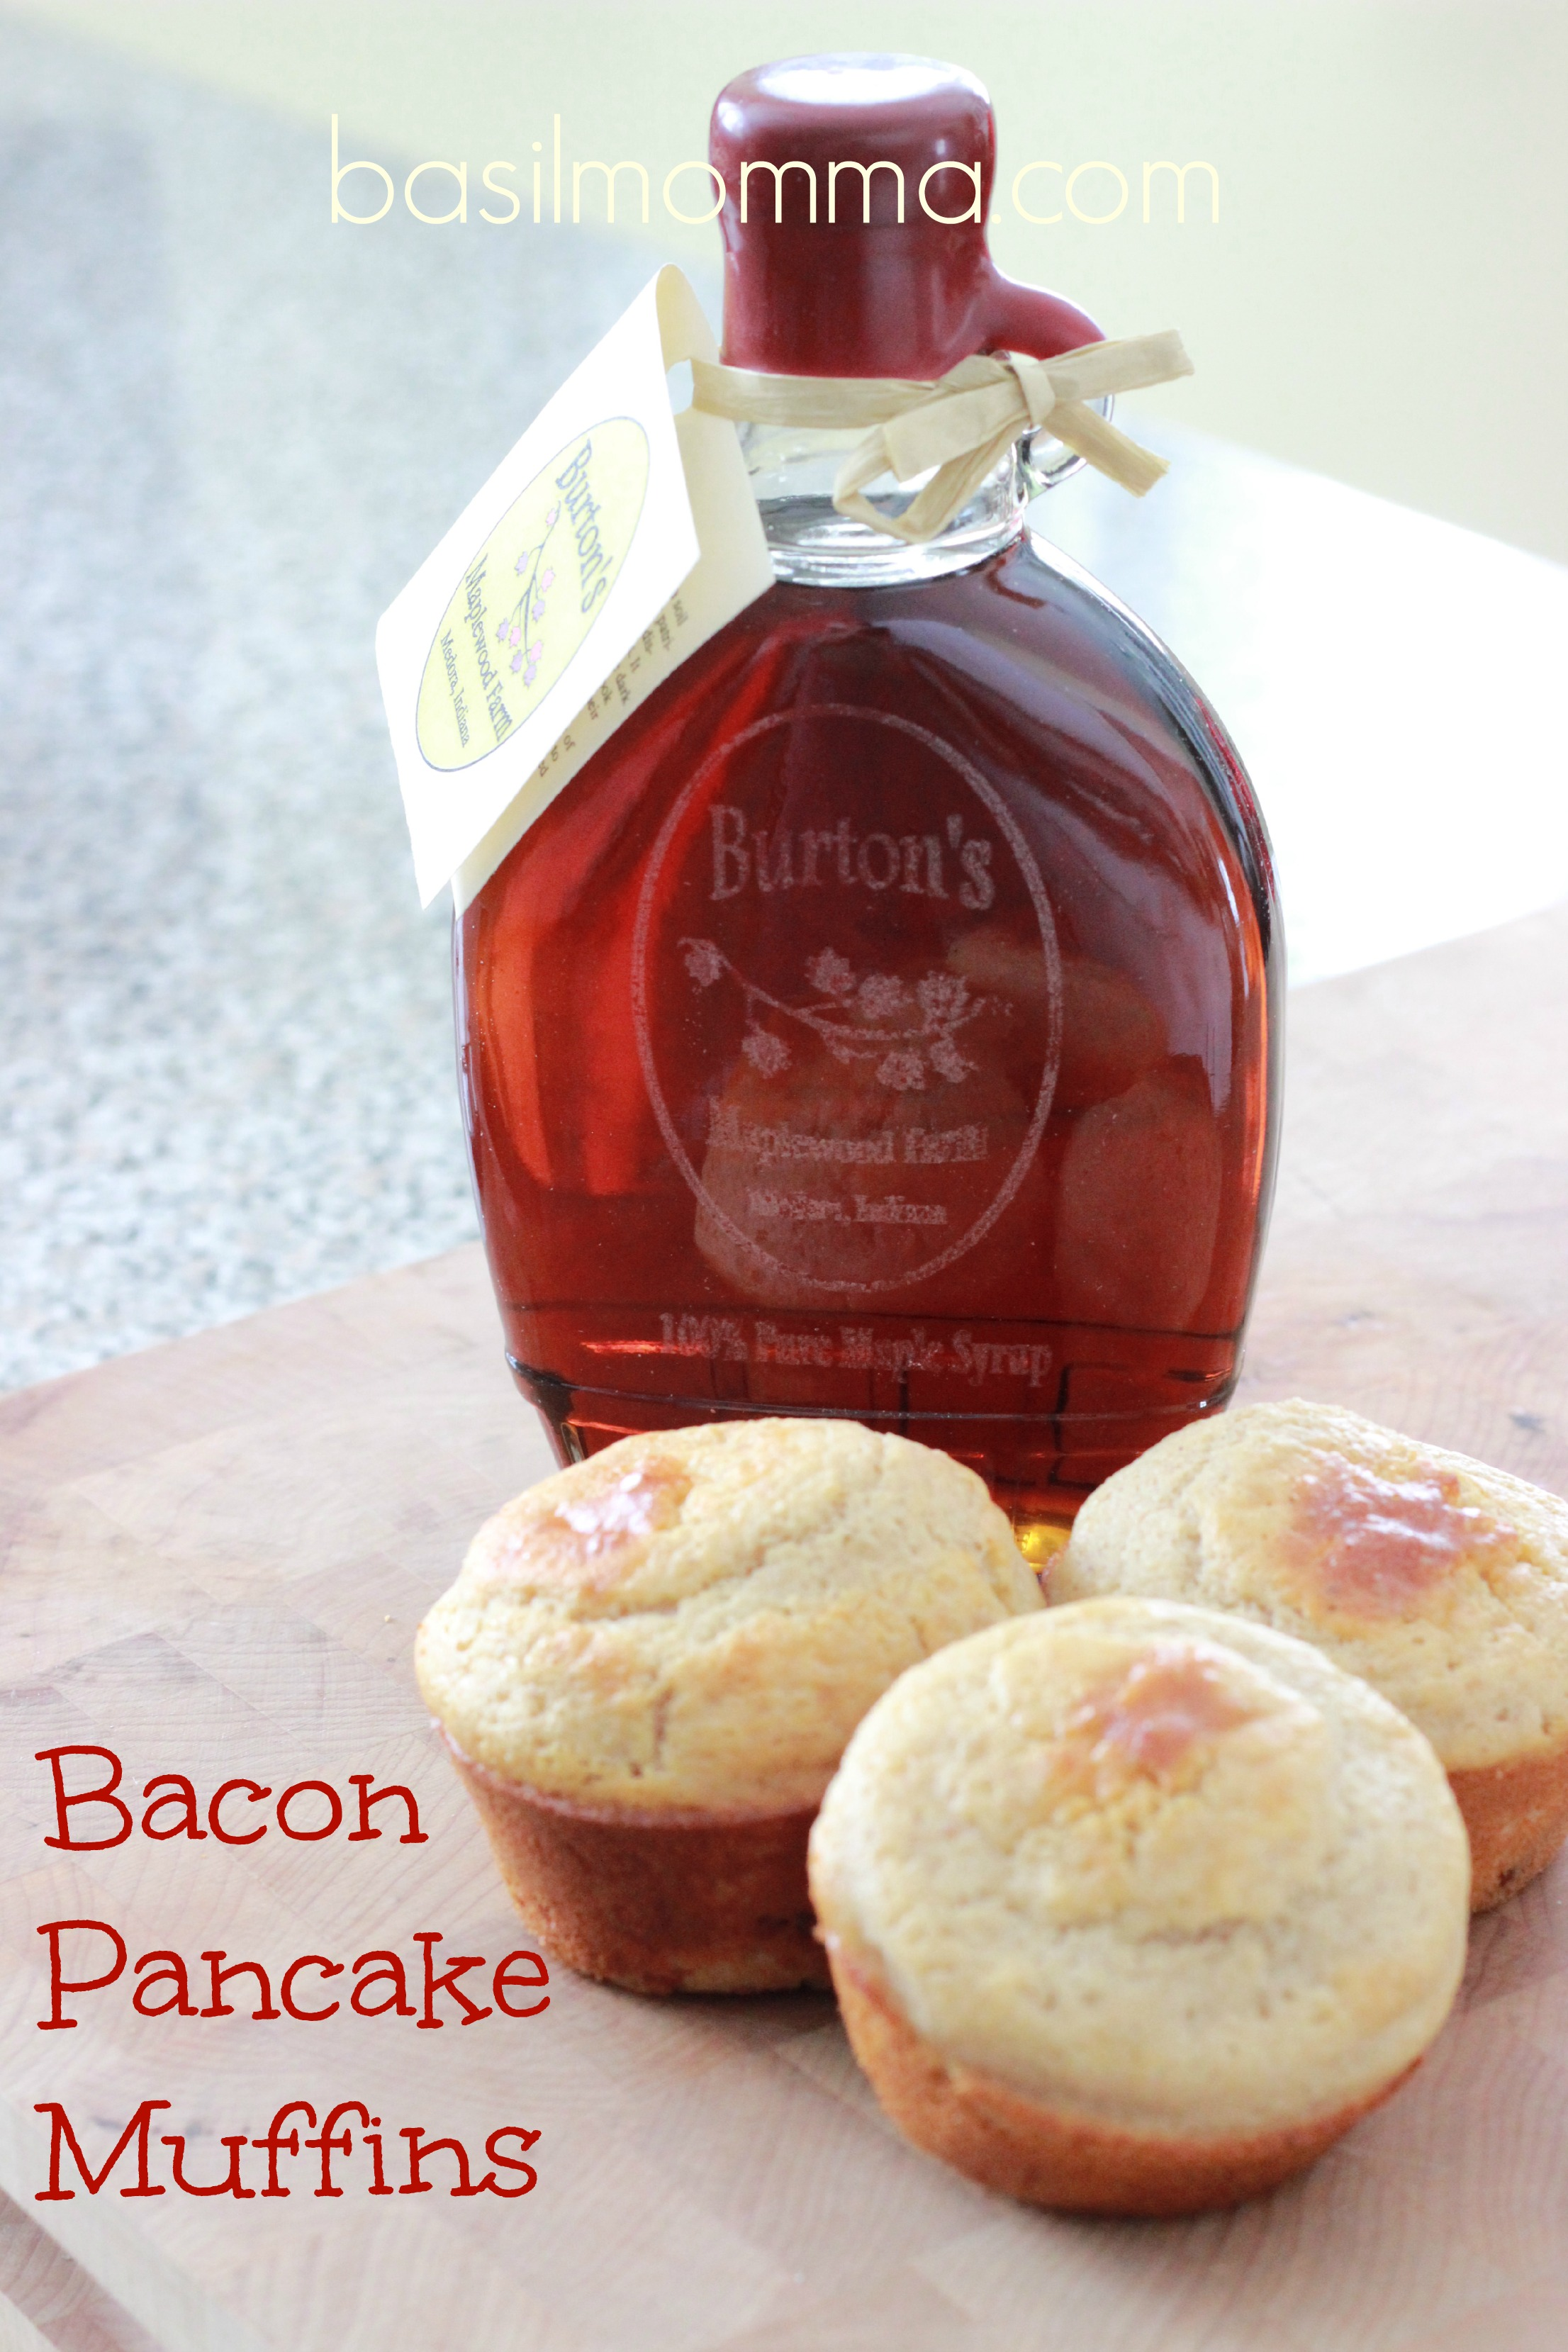 Bacon pancake muffins! Easy to make and stuffed with bacon, they're so good! Drizzle with real maple syrup on a weekend or plain as a grab-n-go breakfast.